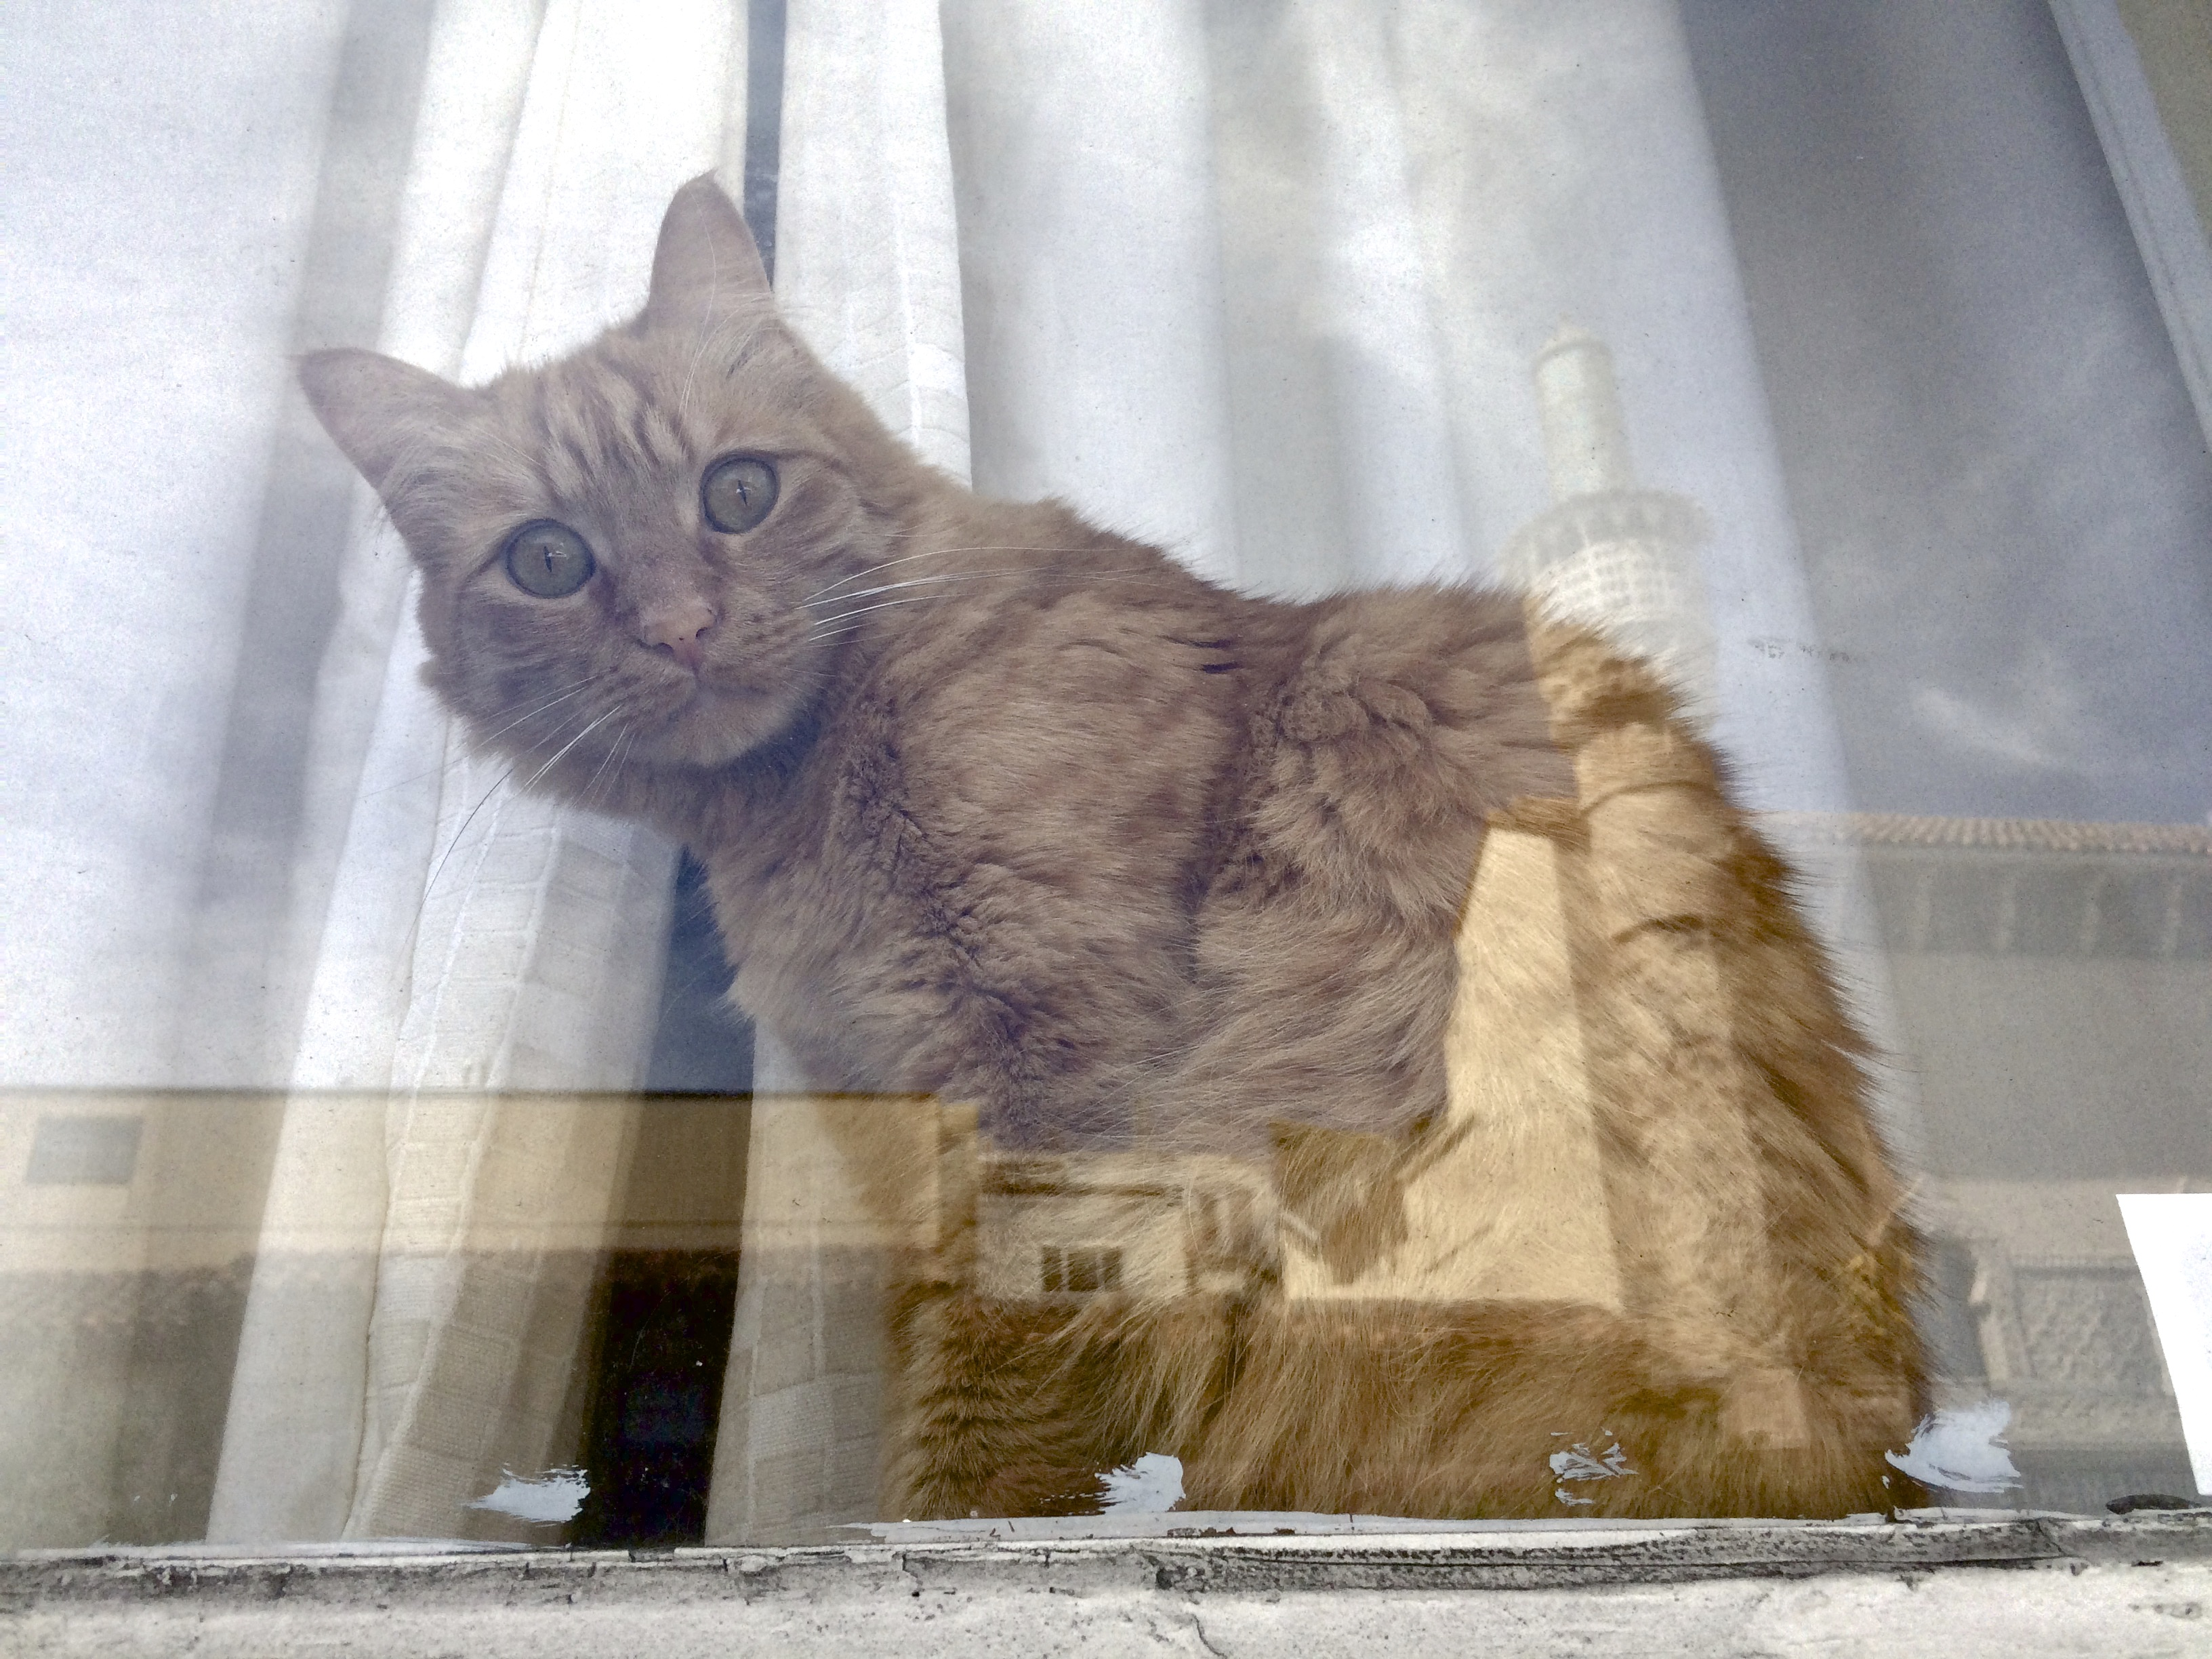 Marmalade Tabby In A Window Looking At The Camera Through Reflections